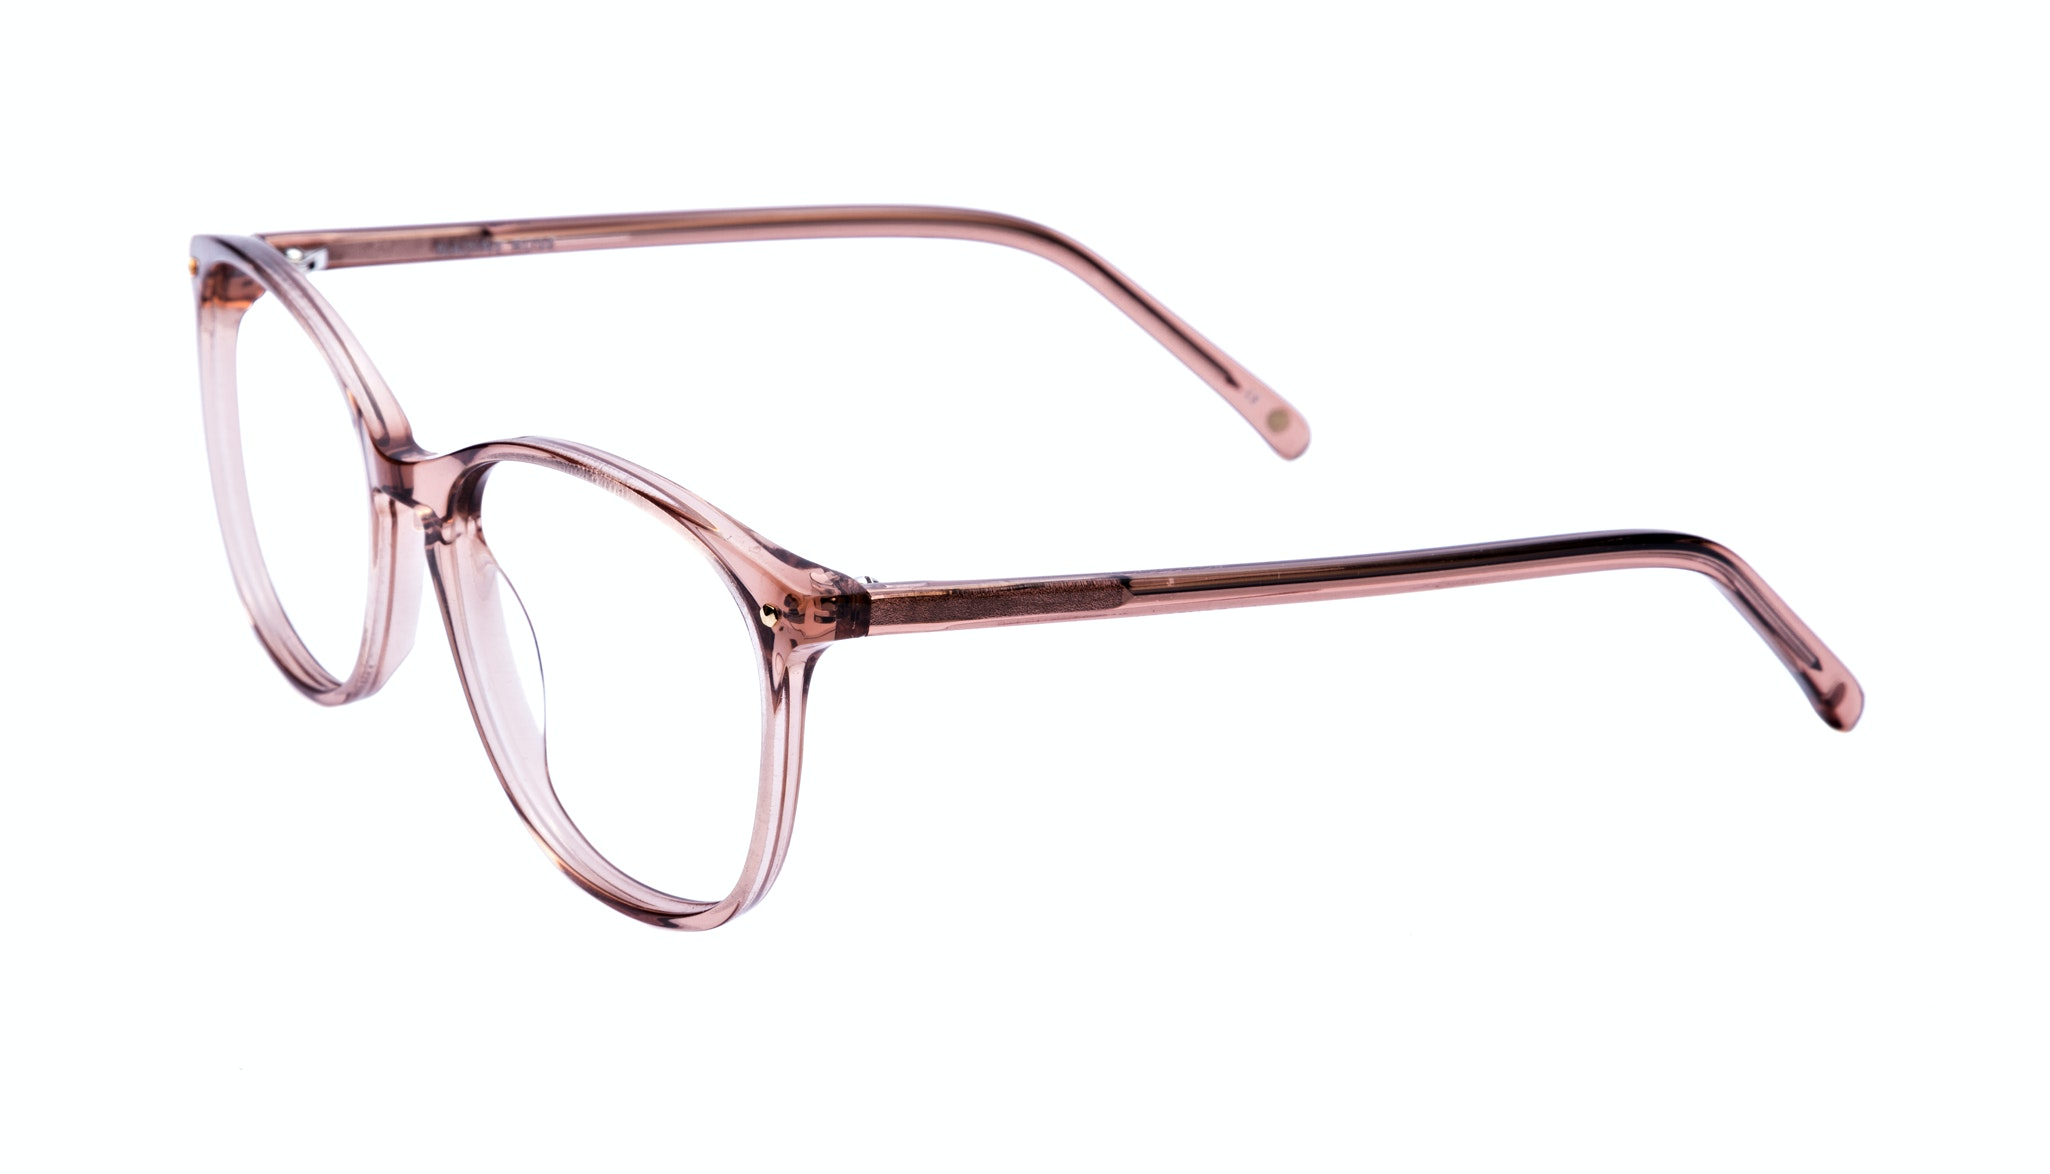 Affordable Fashion Glasses Rectangle Square Round Eyeglasses Women Nadine Rose Tilt